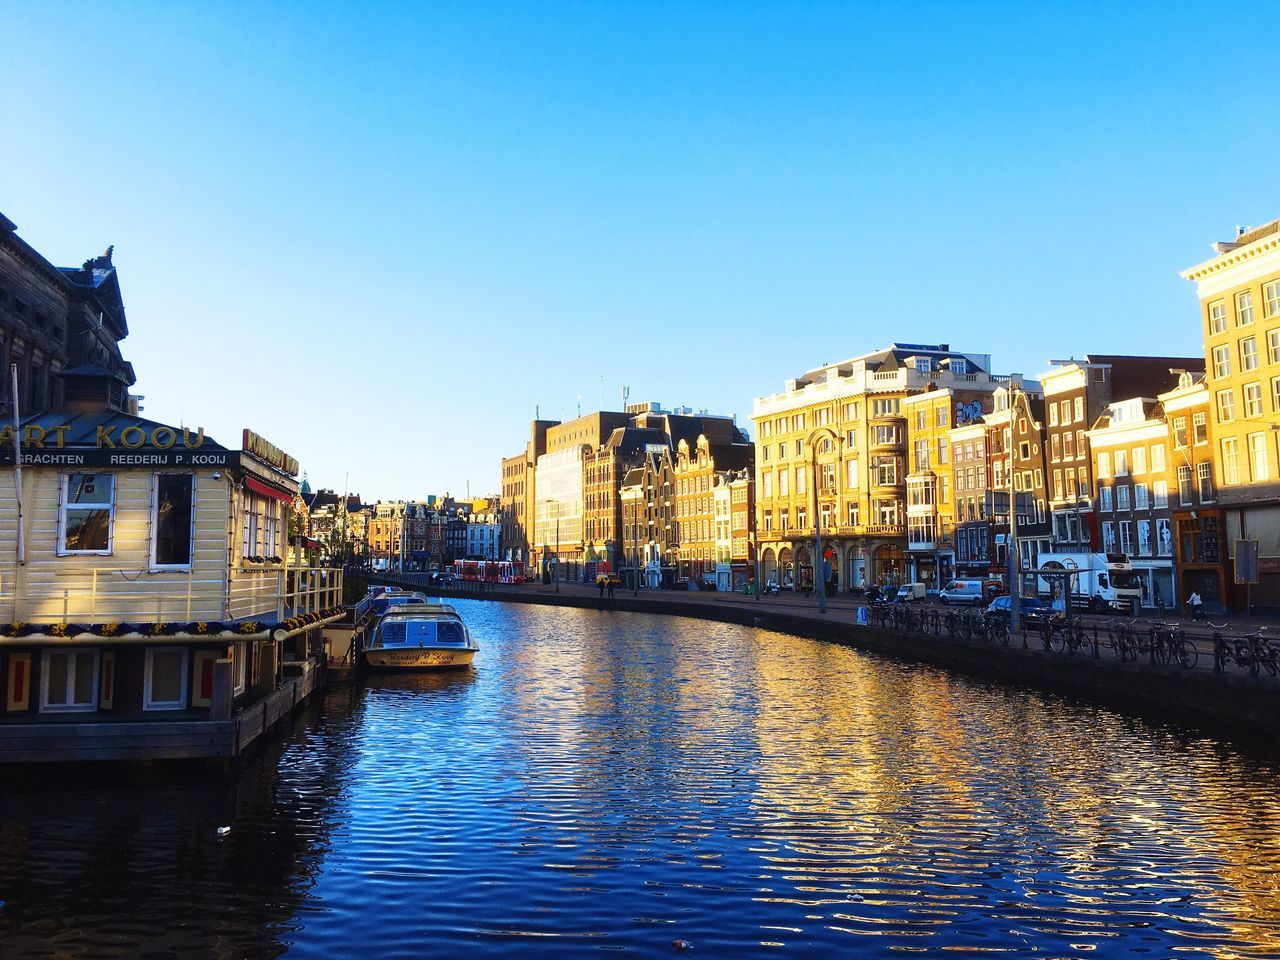 Bomdia Good Morning Amsterdam Morning Sky Sunshine Blue Sky Old Buildings Houses Water Boats Boat Canal City City Life Cityscapes Bikes Streetphotography Street Street Photography Holland Netherlands Taking Photos Enjoying Life Showcase June